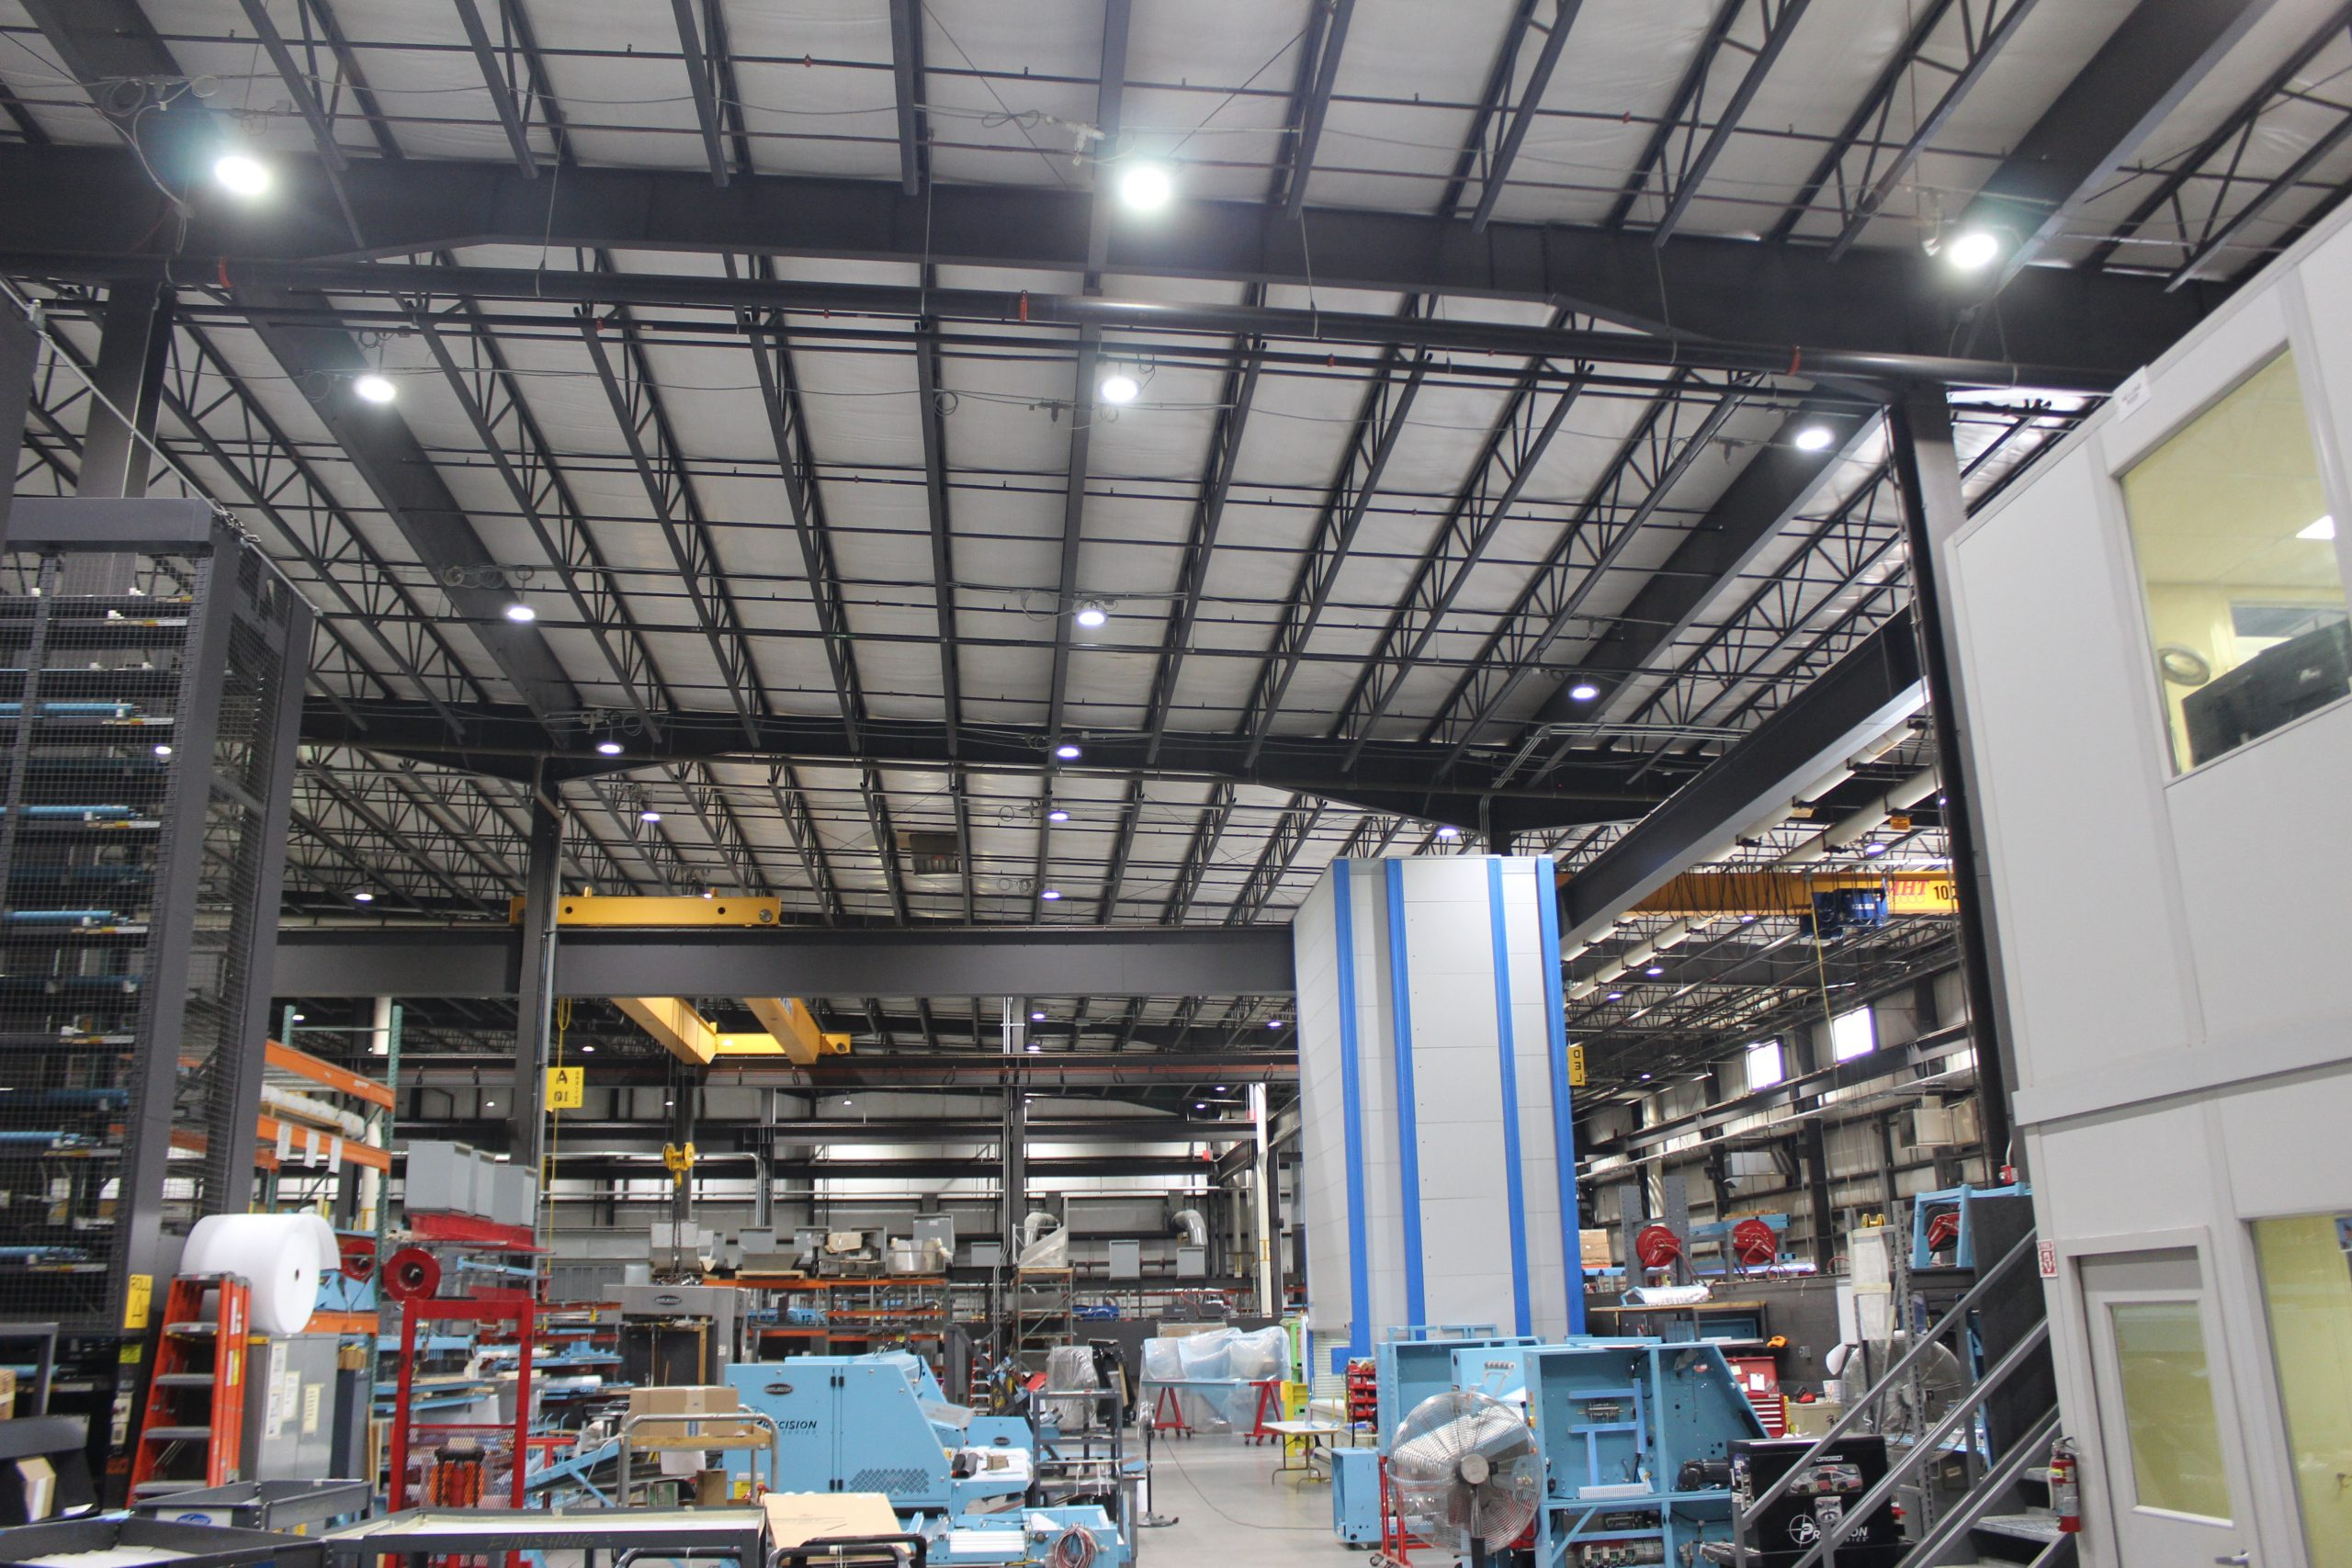 G.A. Braun Saves Nearly $60K a Year with Dialight Industrial LED Lighting